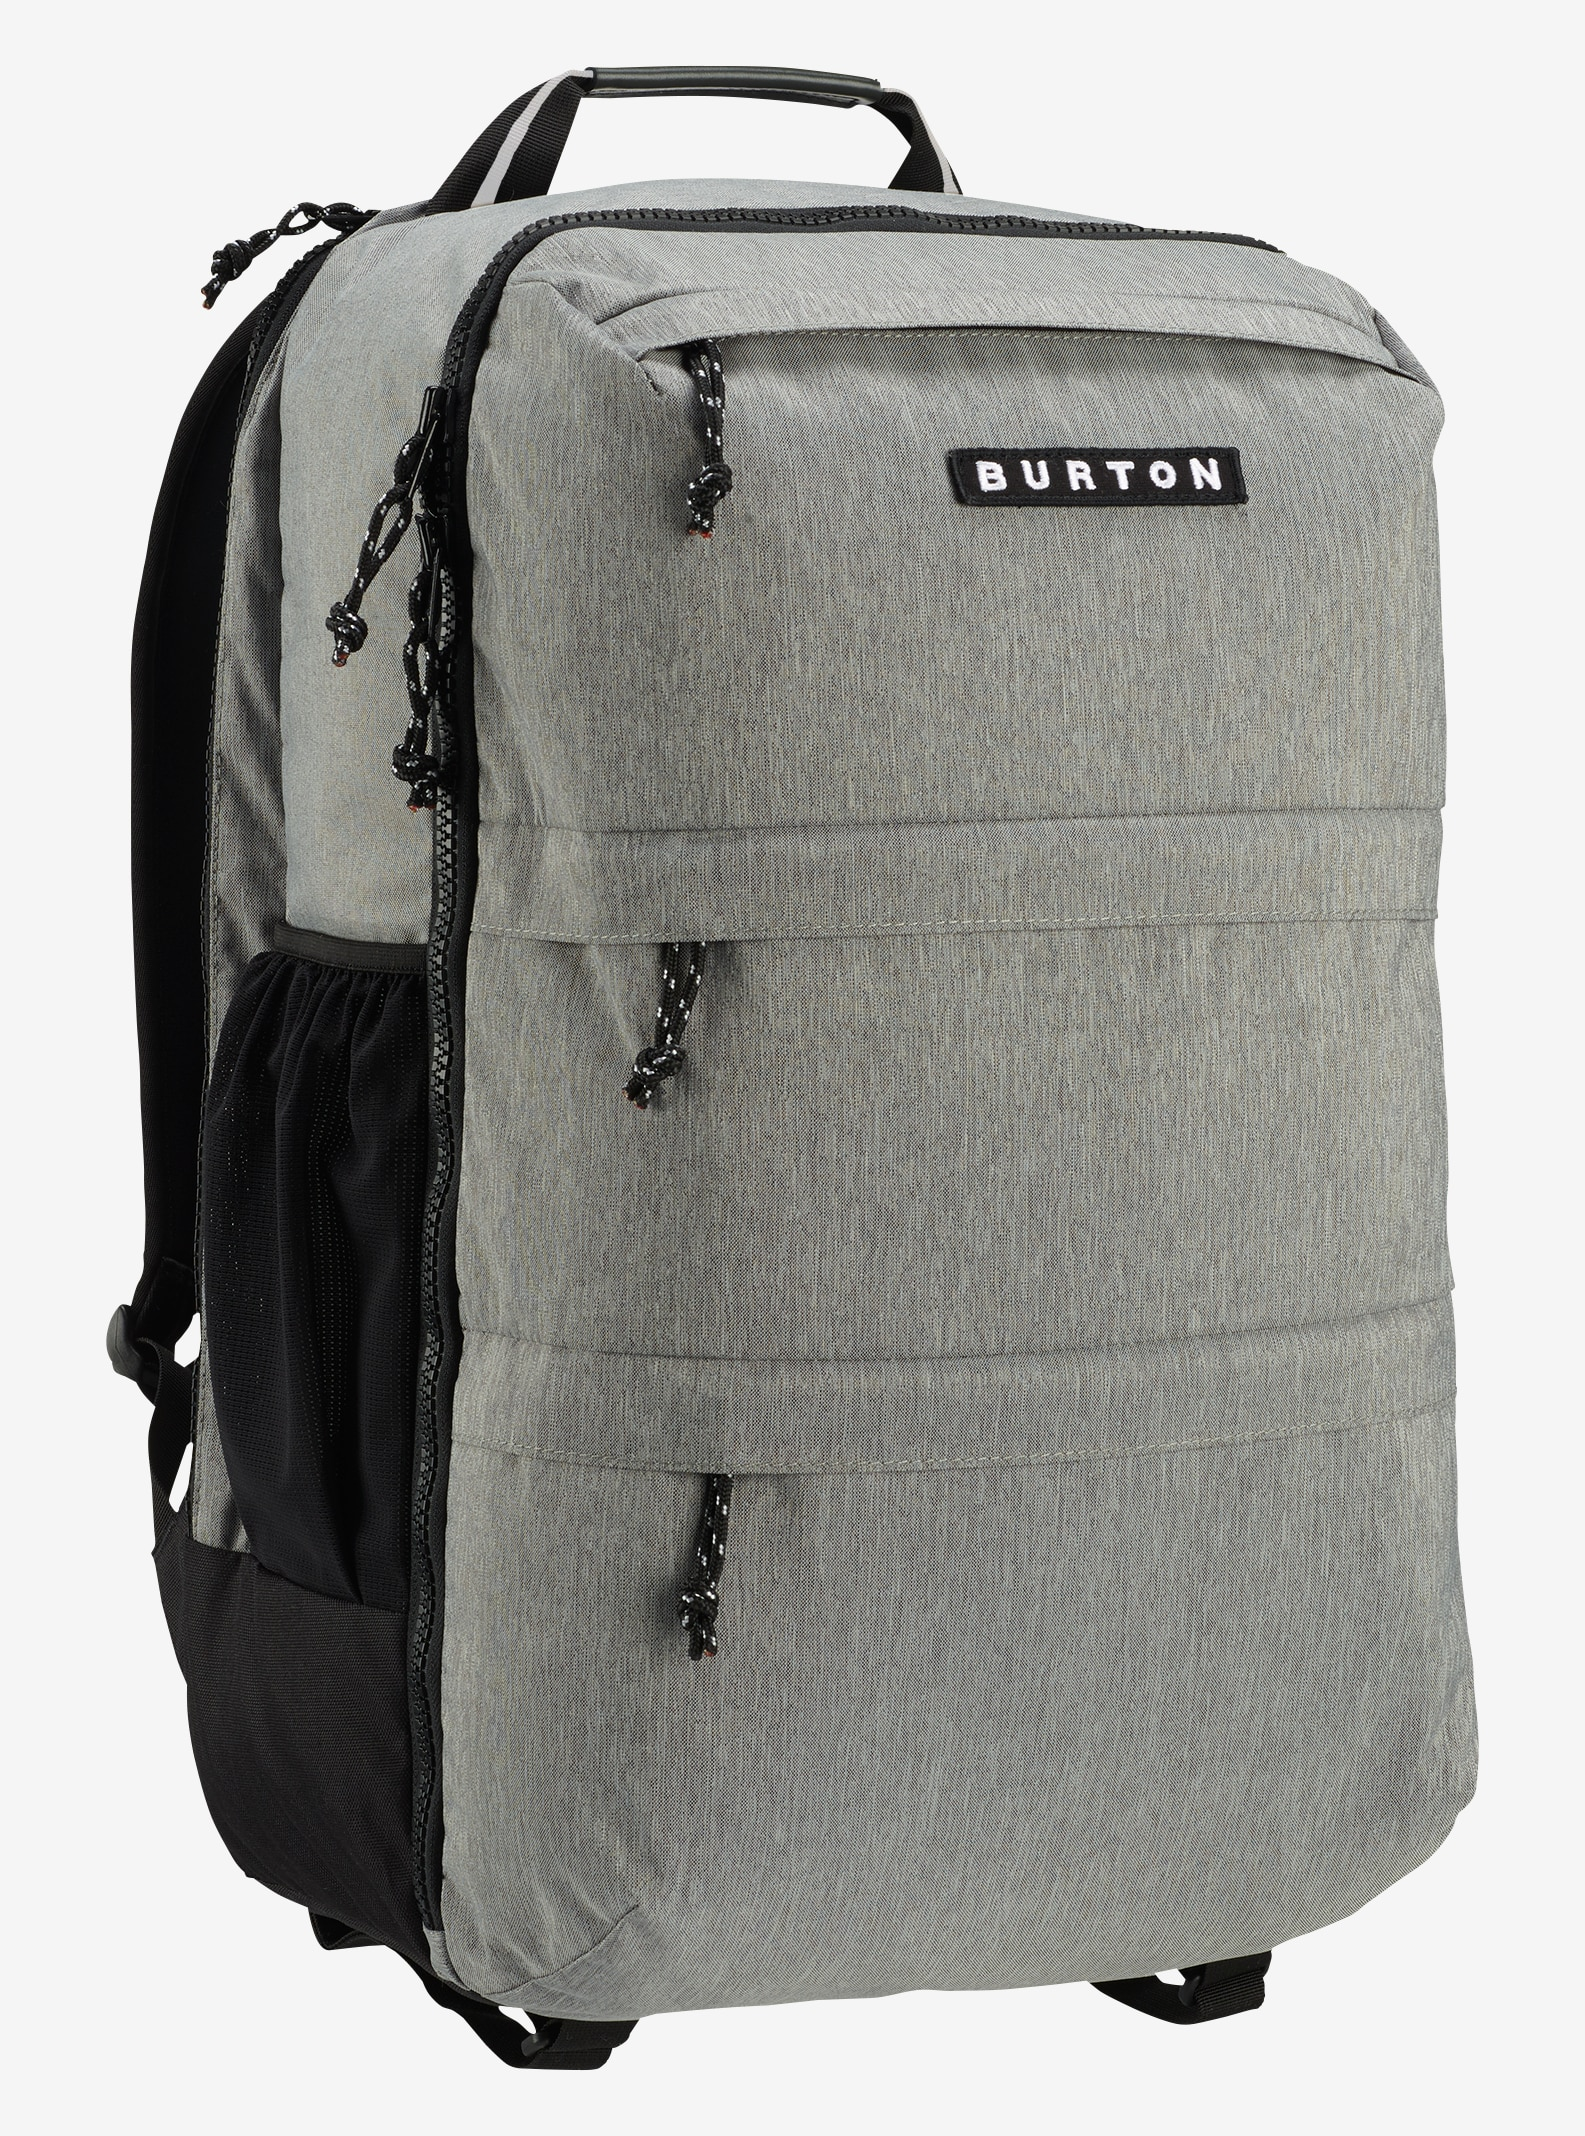 Burton Traverse Travel Pack shown in Grey Heather